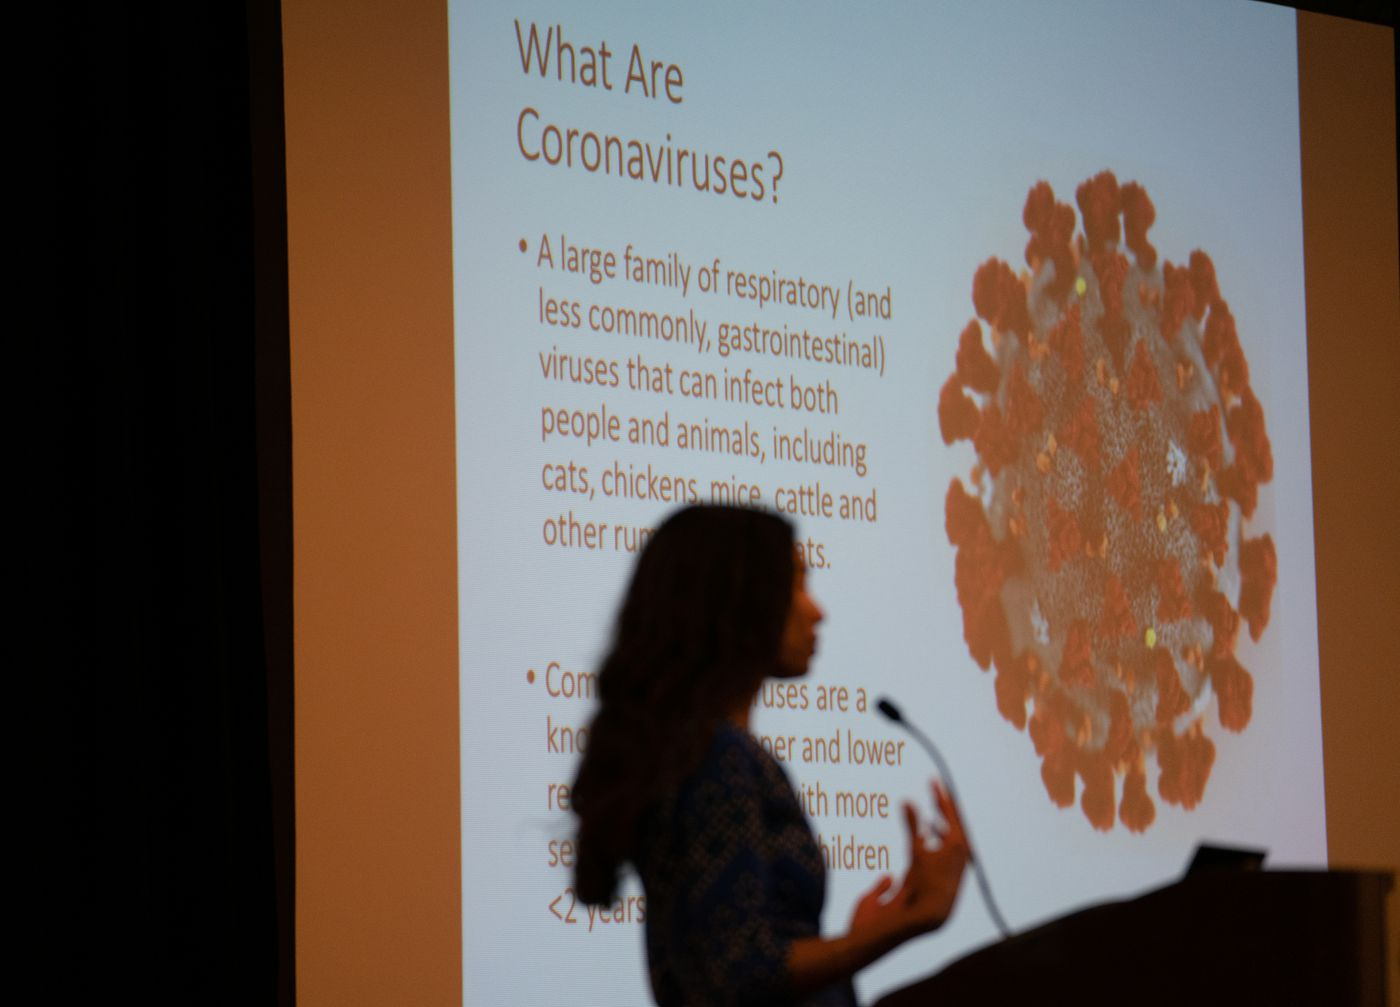 Dr. Kristen Feemster, MD, MPH, Medical Director, Acute Communicable Diseases Program, Division of Disease Control, PDPH, speaks at a health department forum on coronavirus response, in Philadelphia, March 11, 2020.